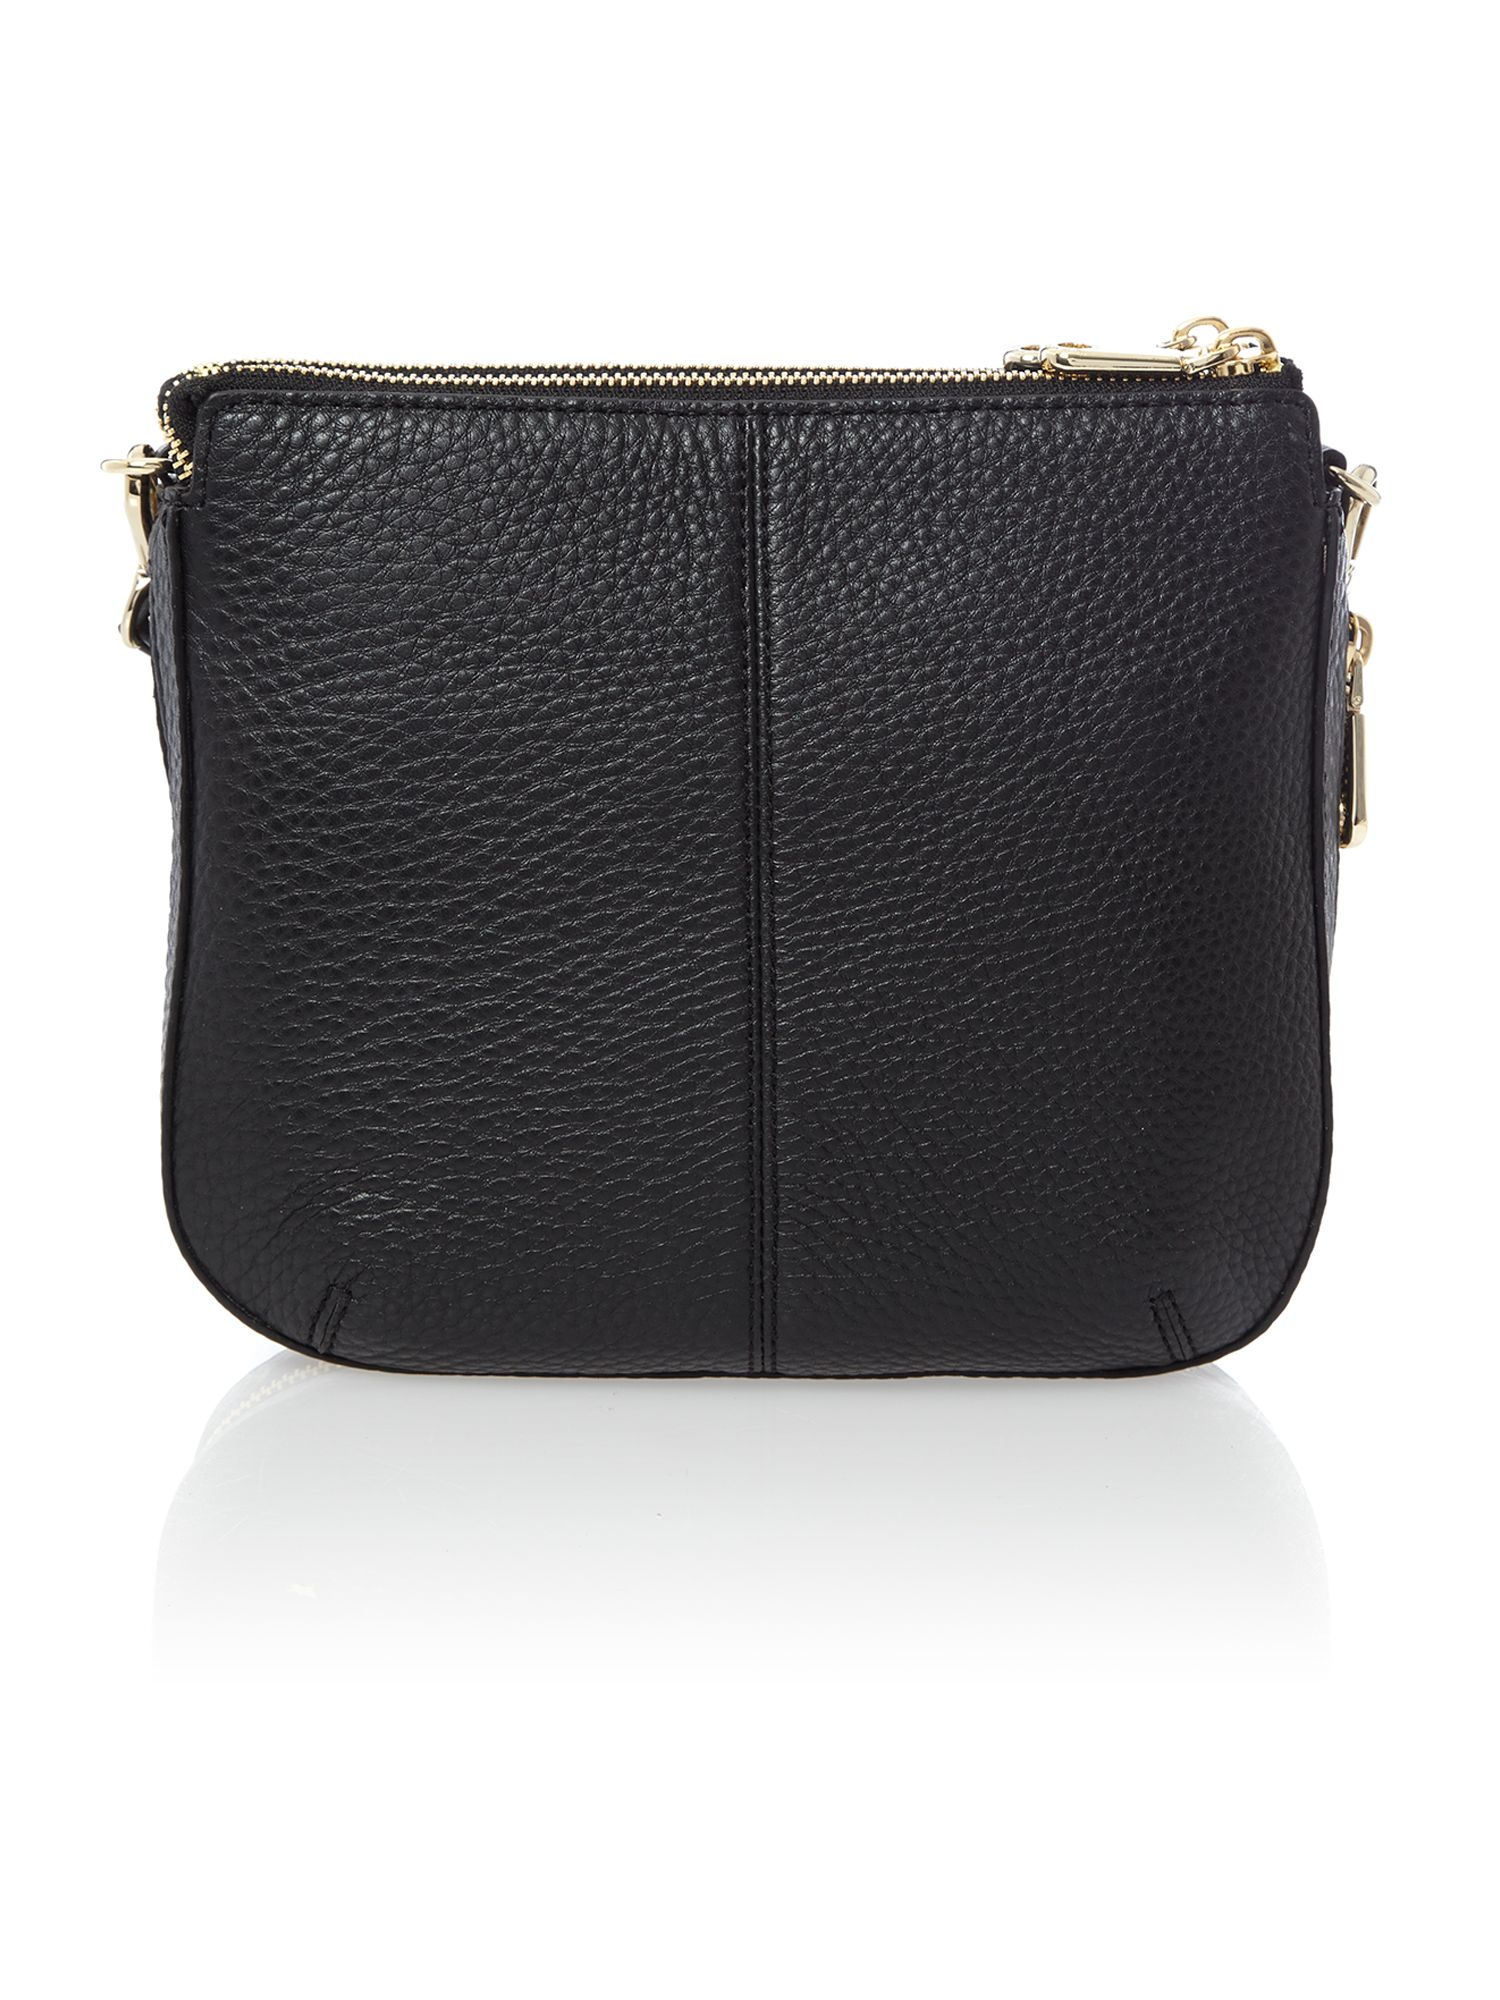 Tribeca black double zip cross body bag